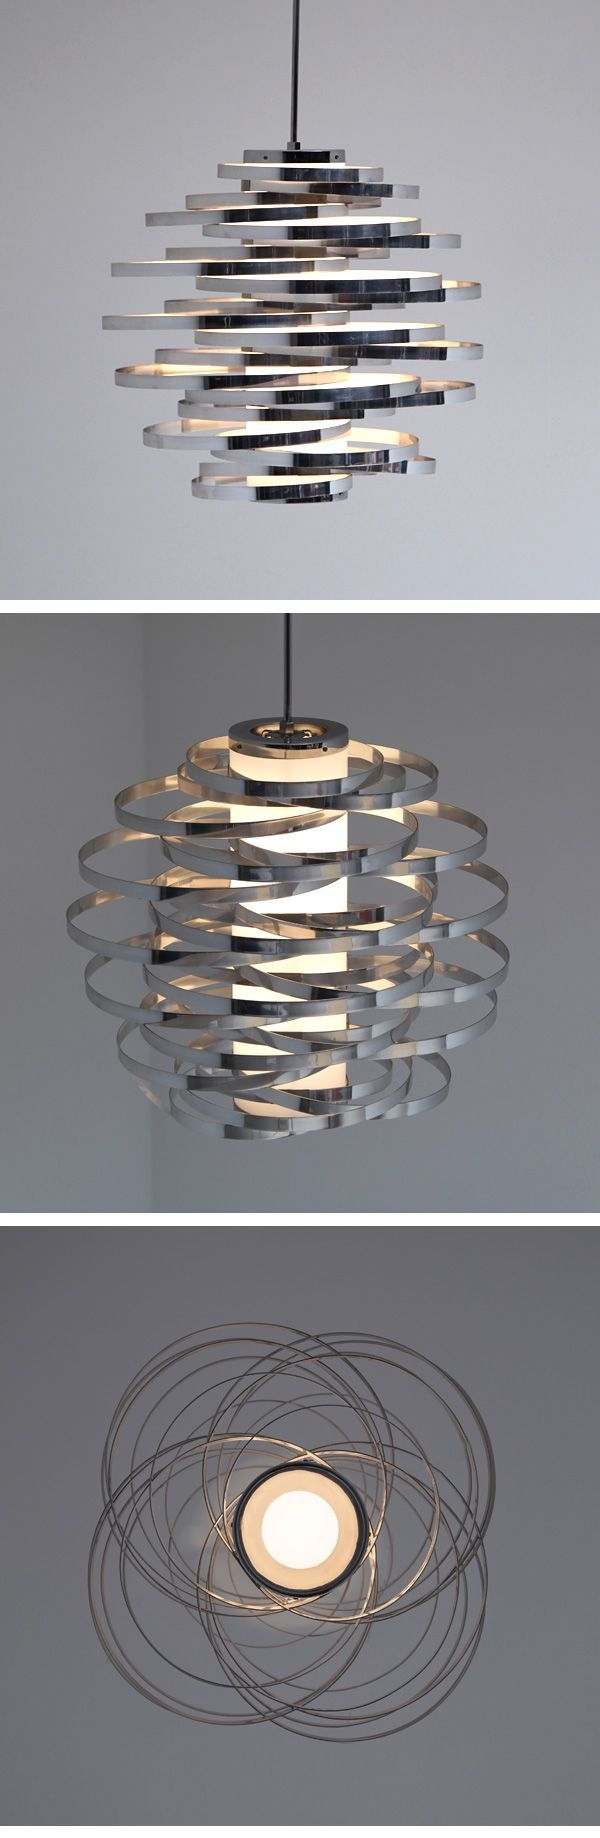 GAETANO SCIOLARI CHANDELIER 1960'S   Here a hard to find room filling Sciolari chandelier. a great example of wonderful Italian Design. hanging lamp with two lightsources in a milkcoloured plastic body covered in aluminium rings. In perfect condition.